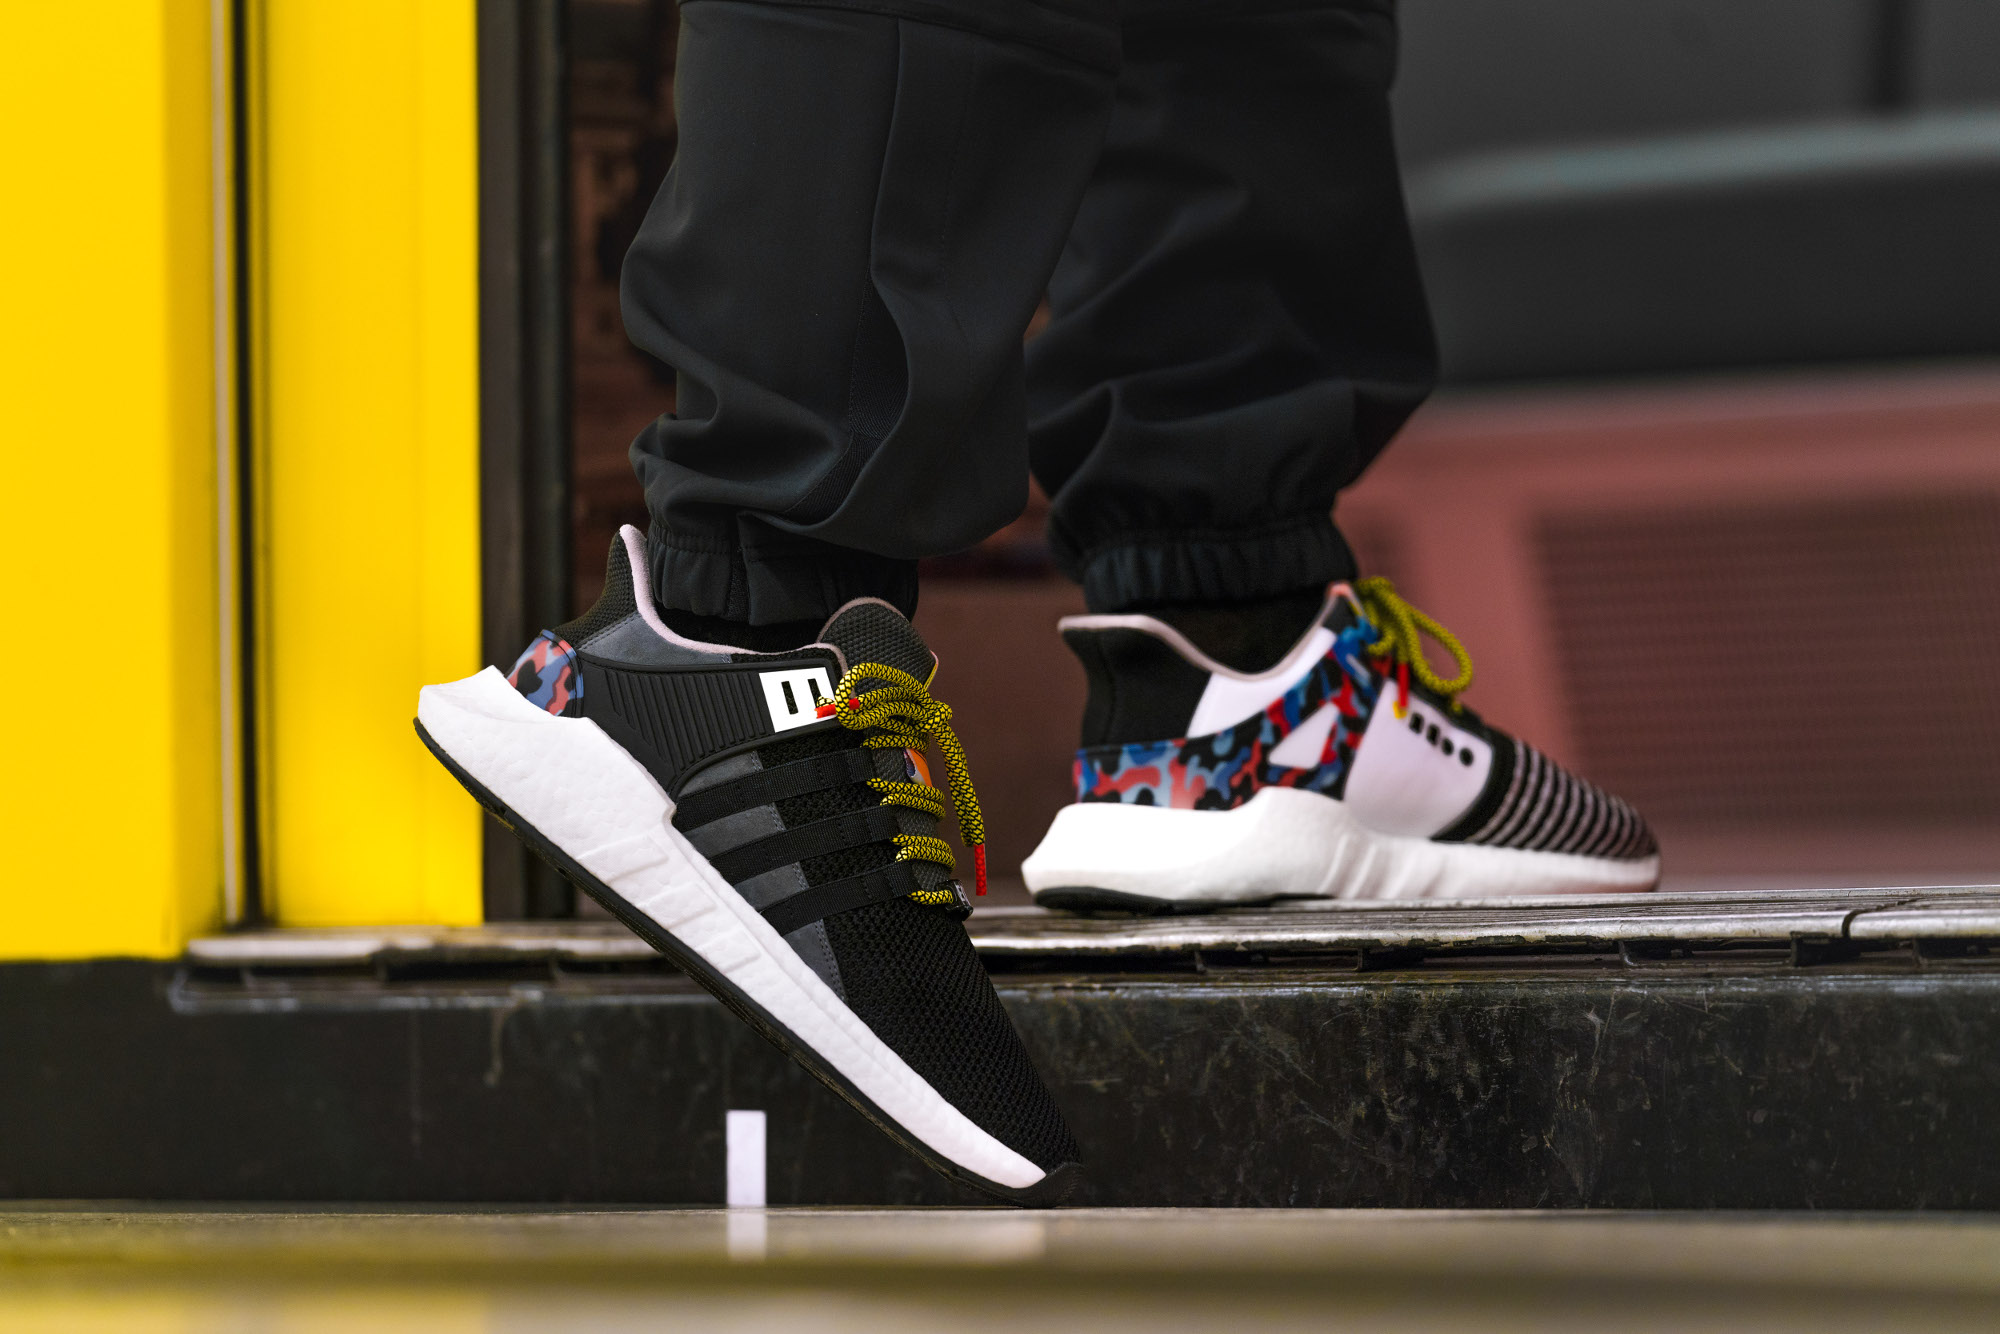 Adidas and BVG join forces to produce limited edition sneakers